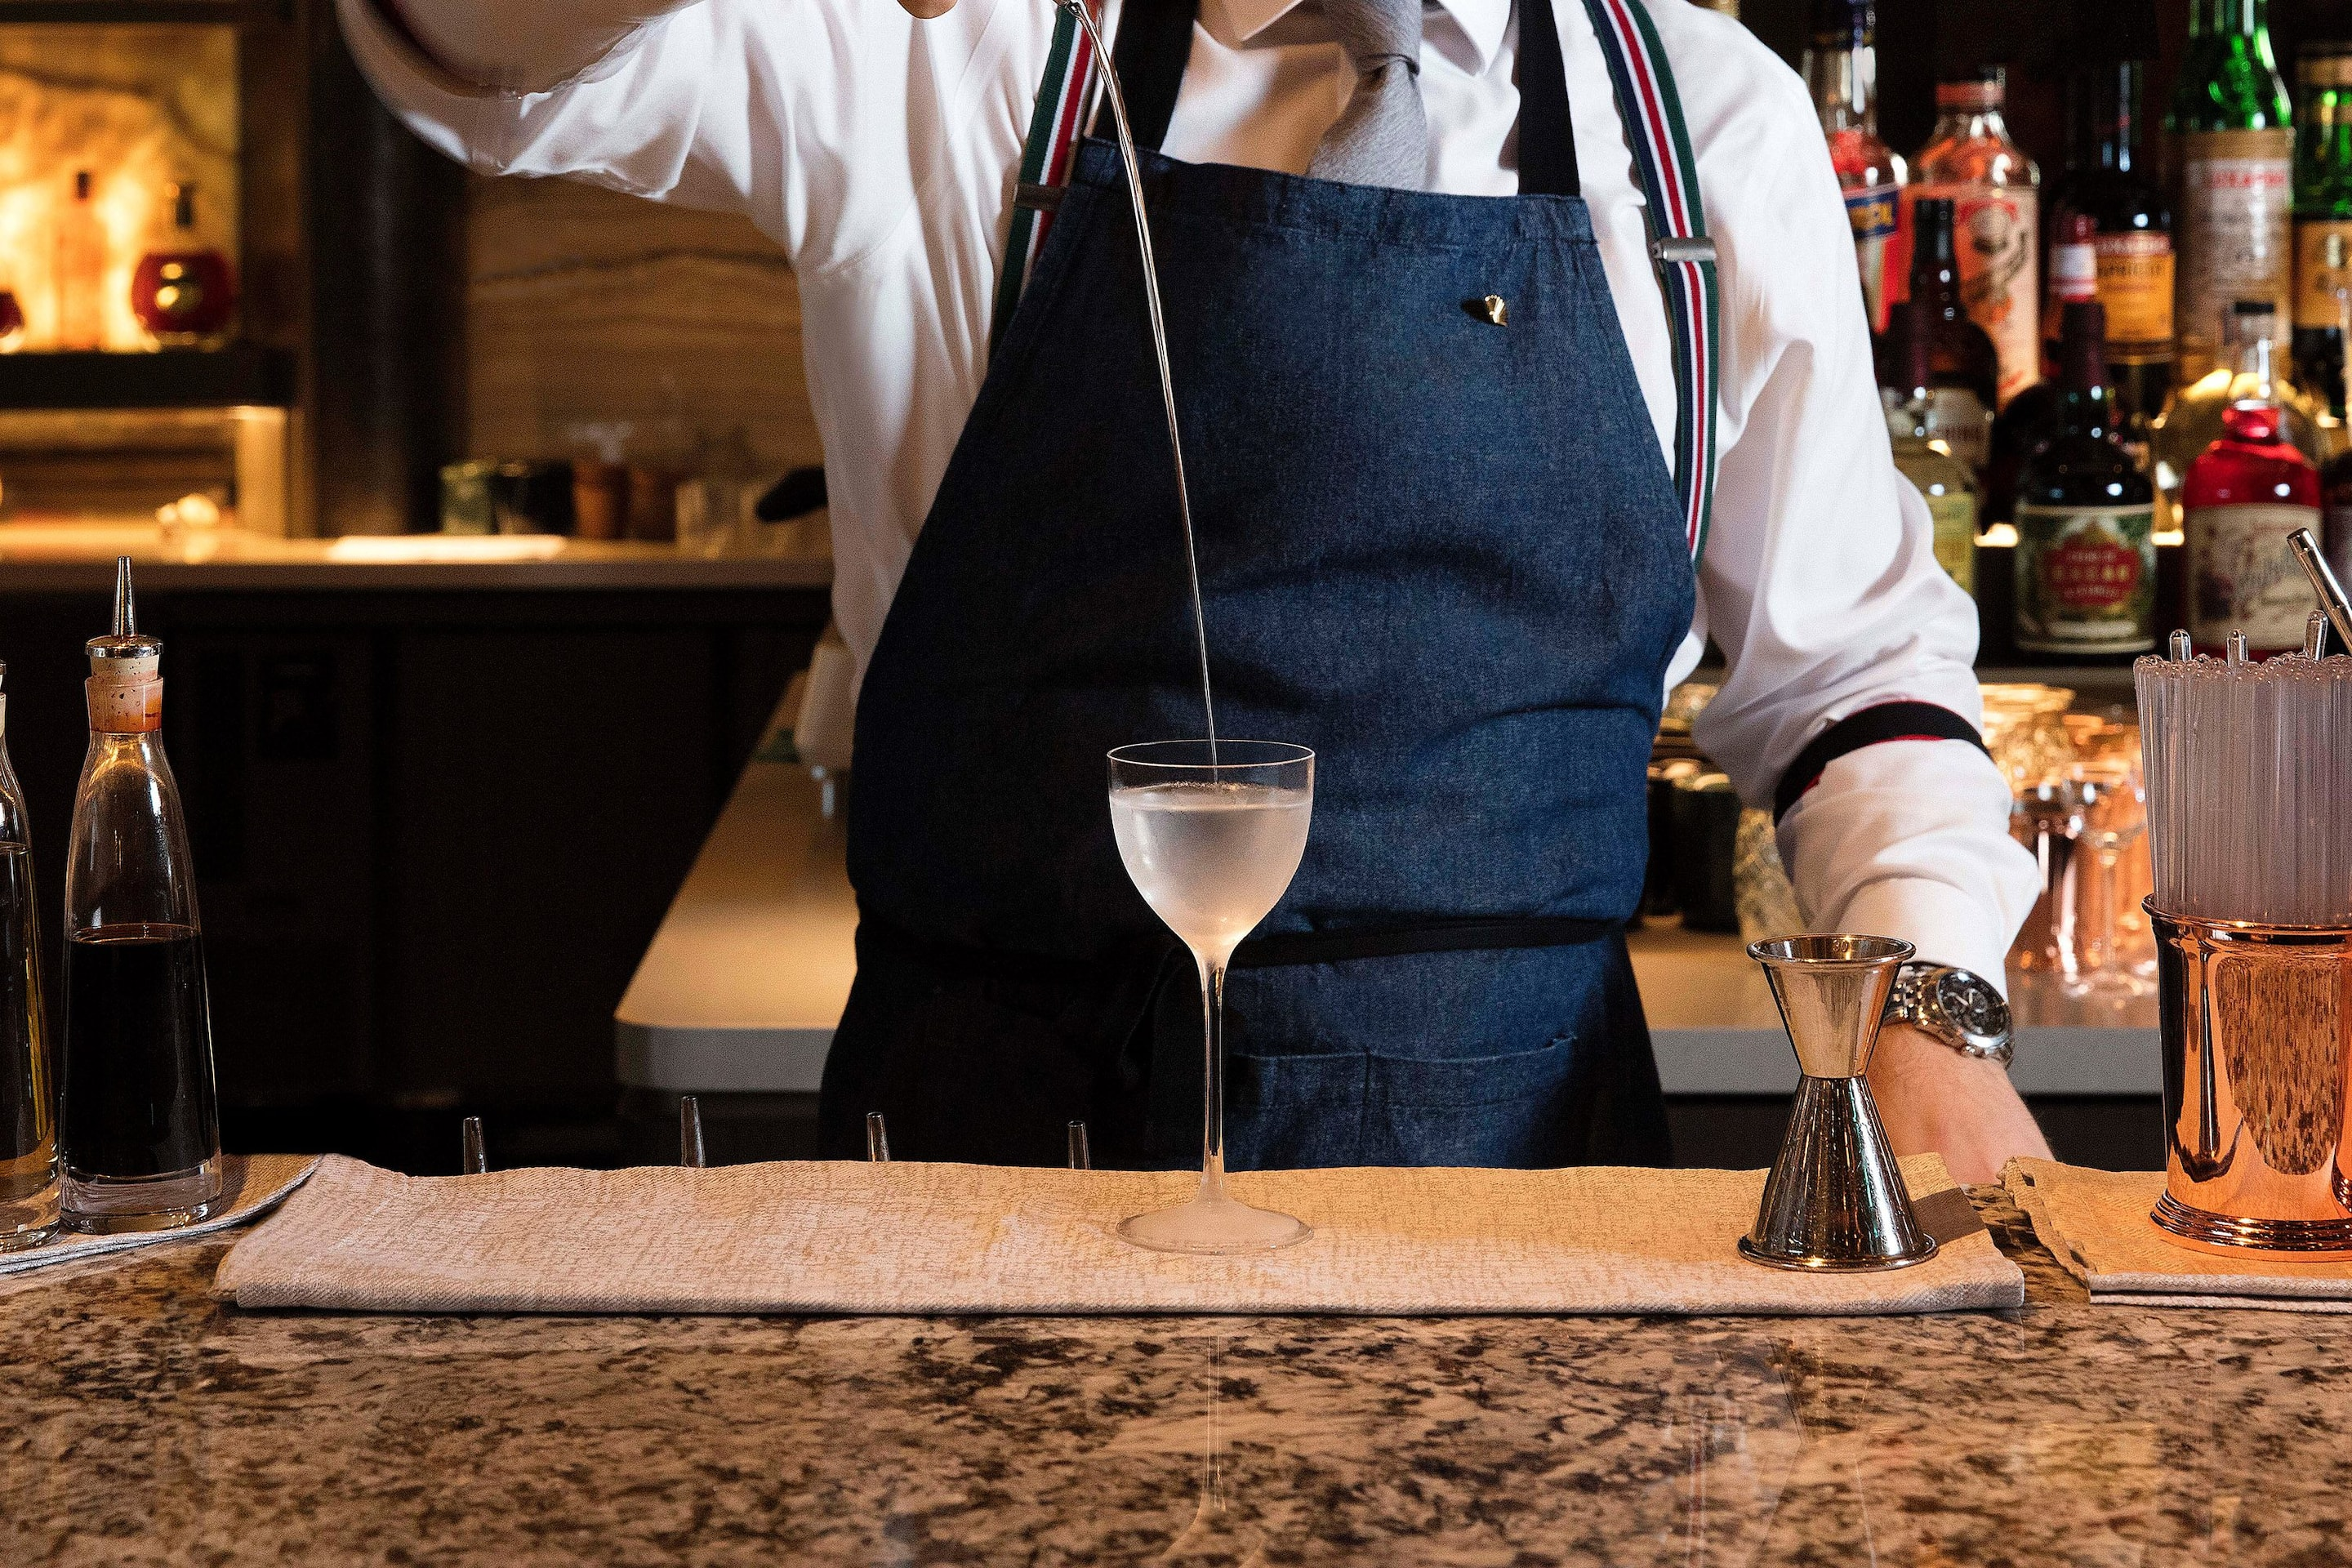 Bartender pours a cocktail into a glass from a height